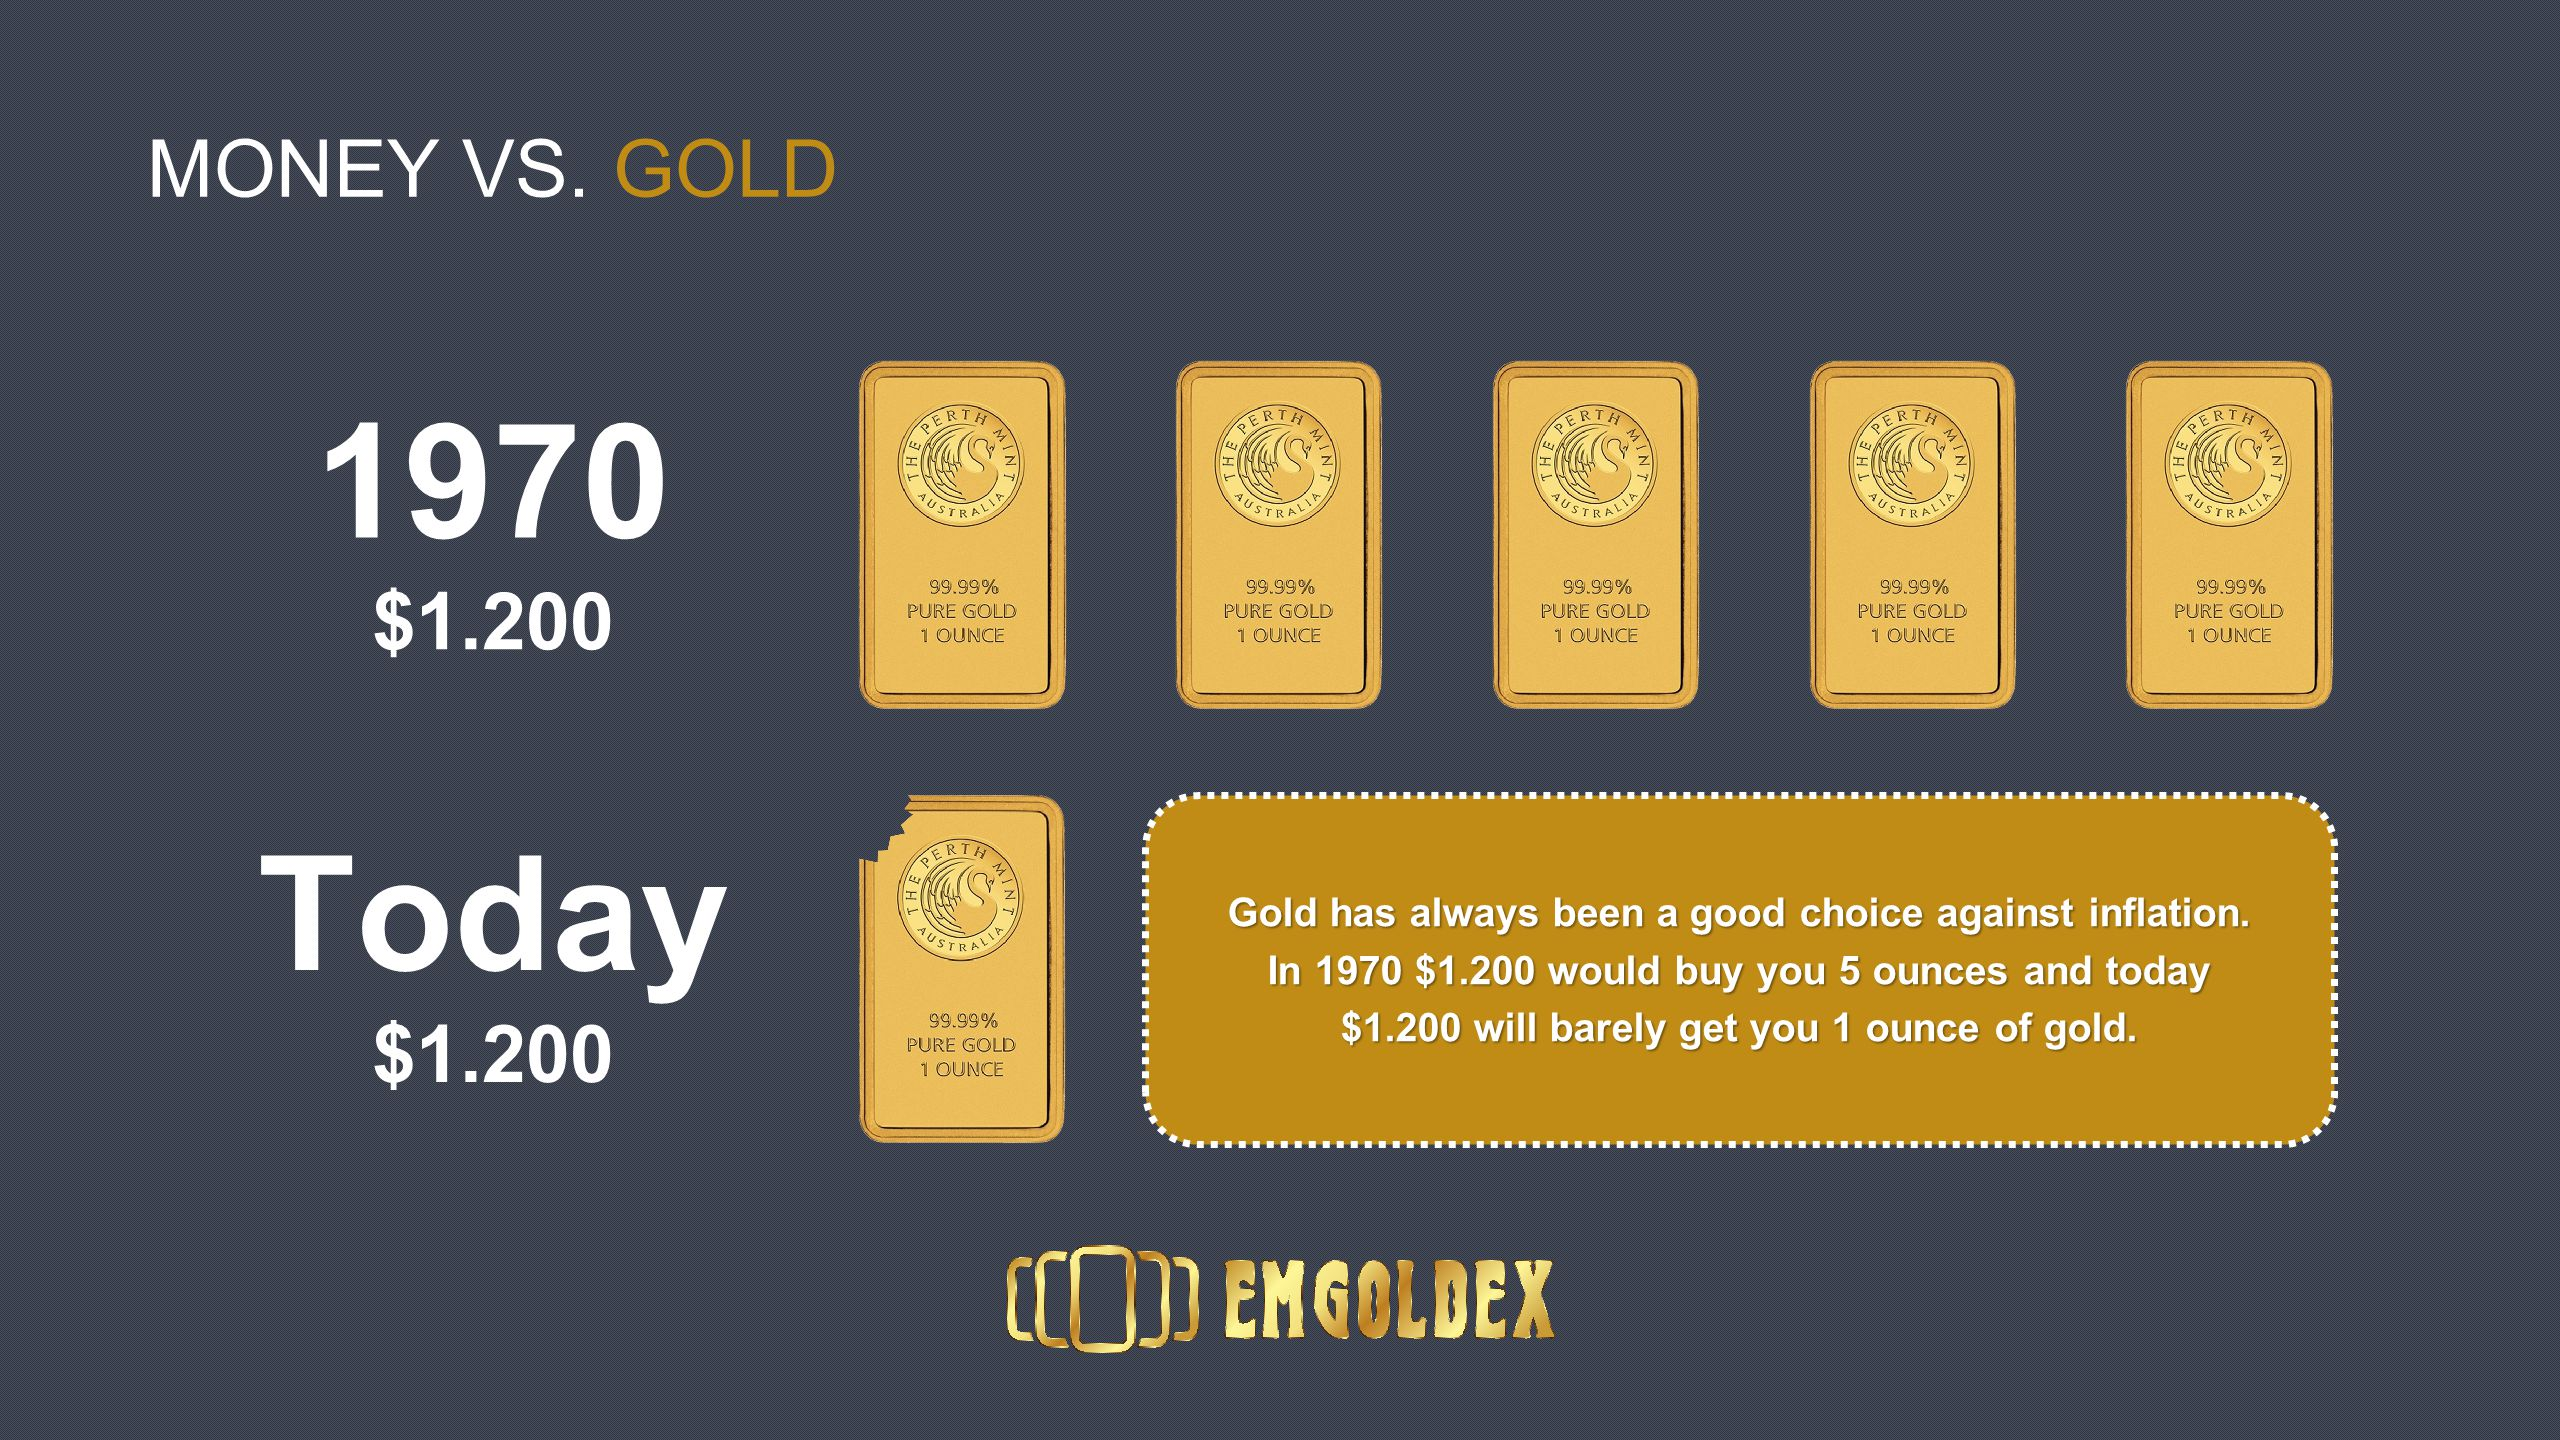 MONEY VS. GOLD Gold has always been a good choice against inflation.